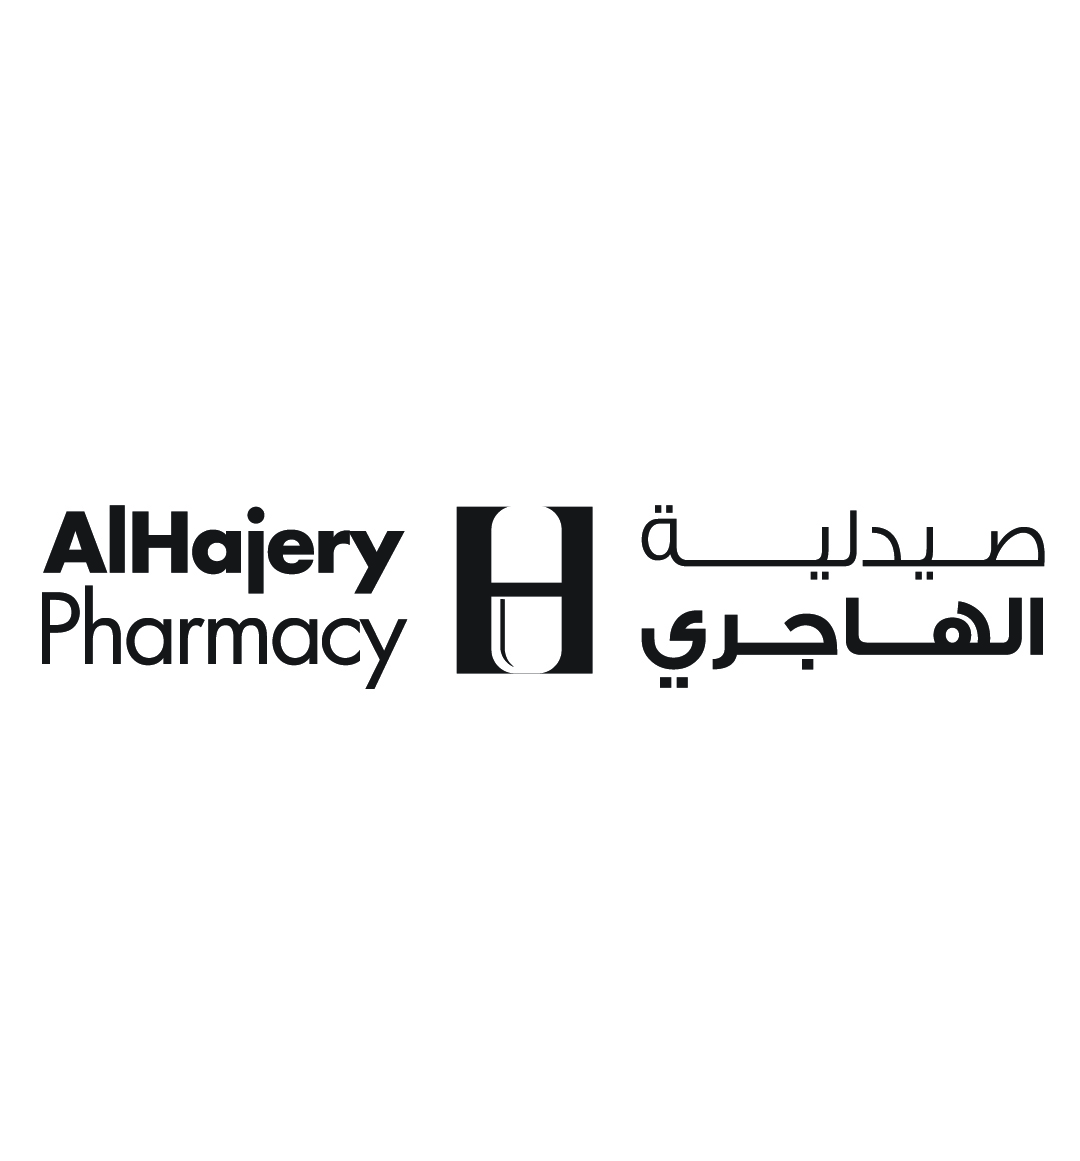 Al Hajery Pharmacy